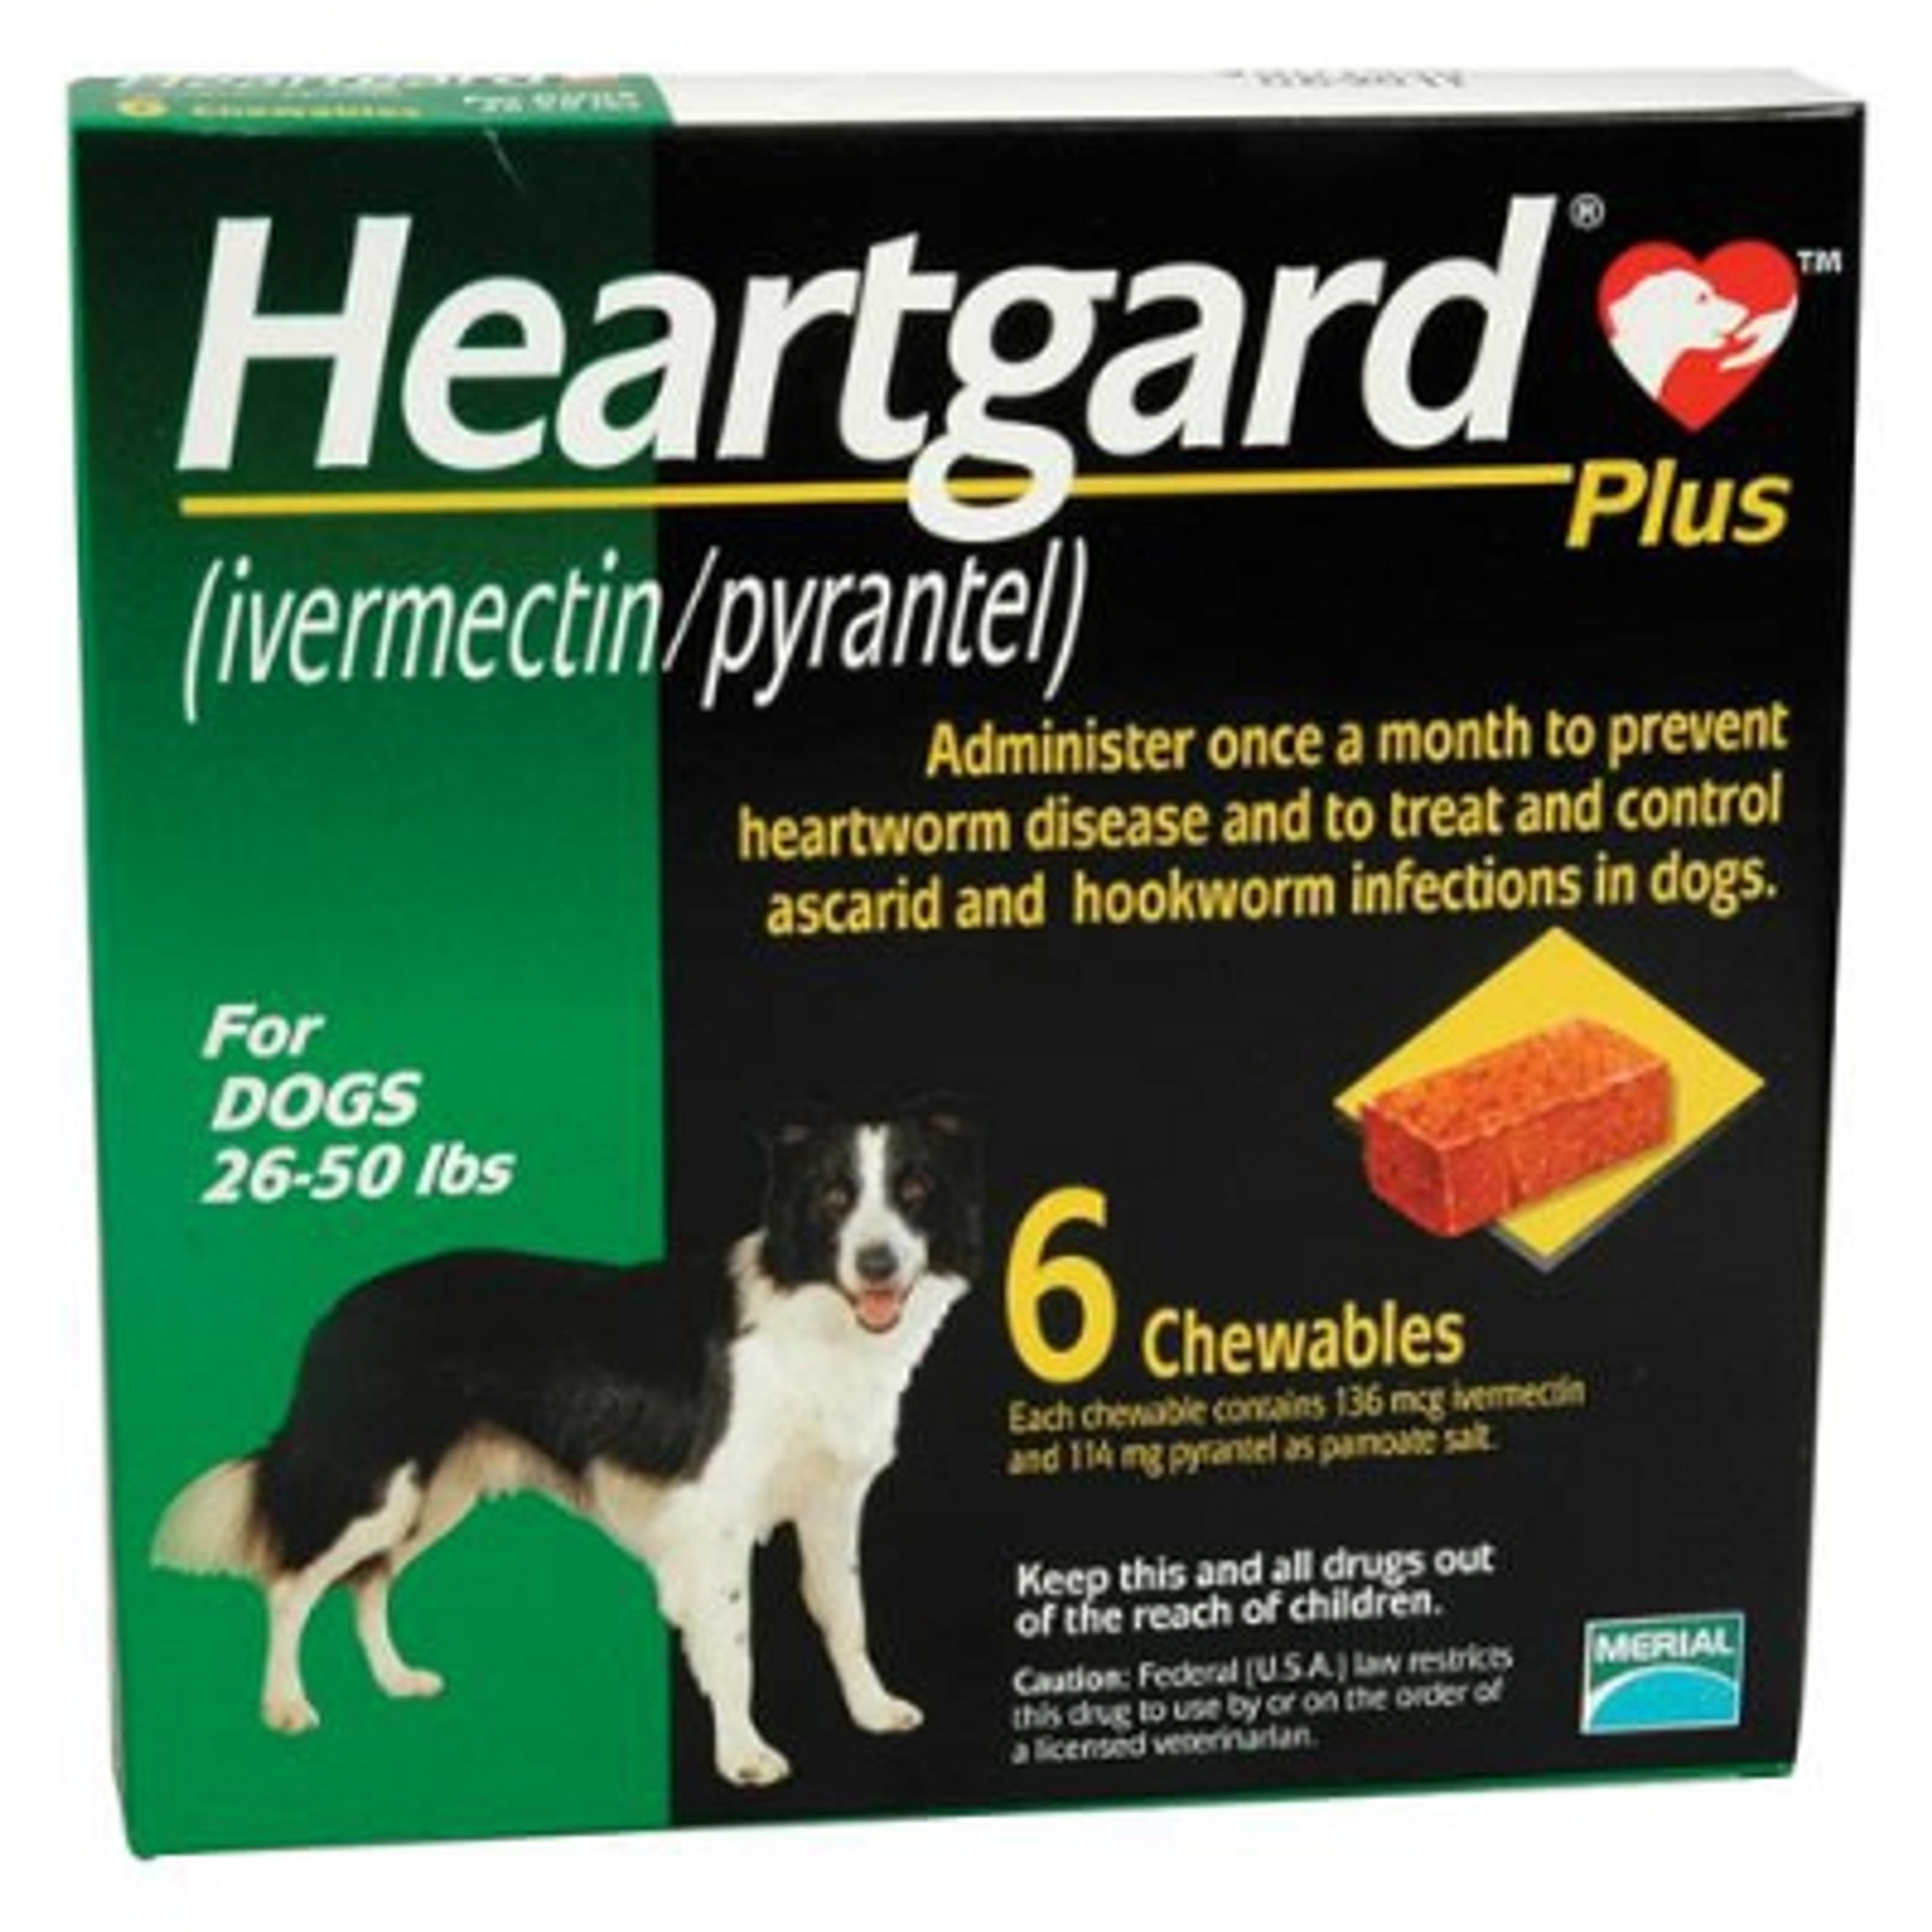 Heartgard Plus Chewables For Dogs 26 50 Lbs Green 6 Pack